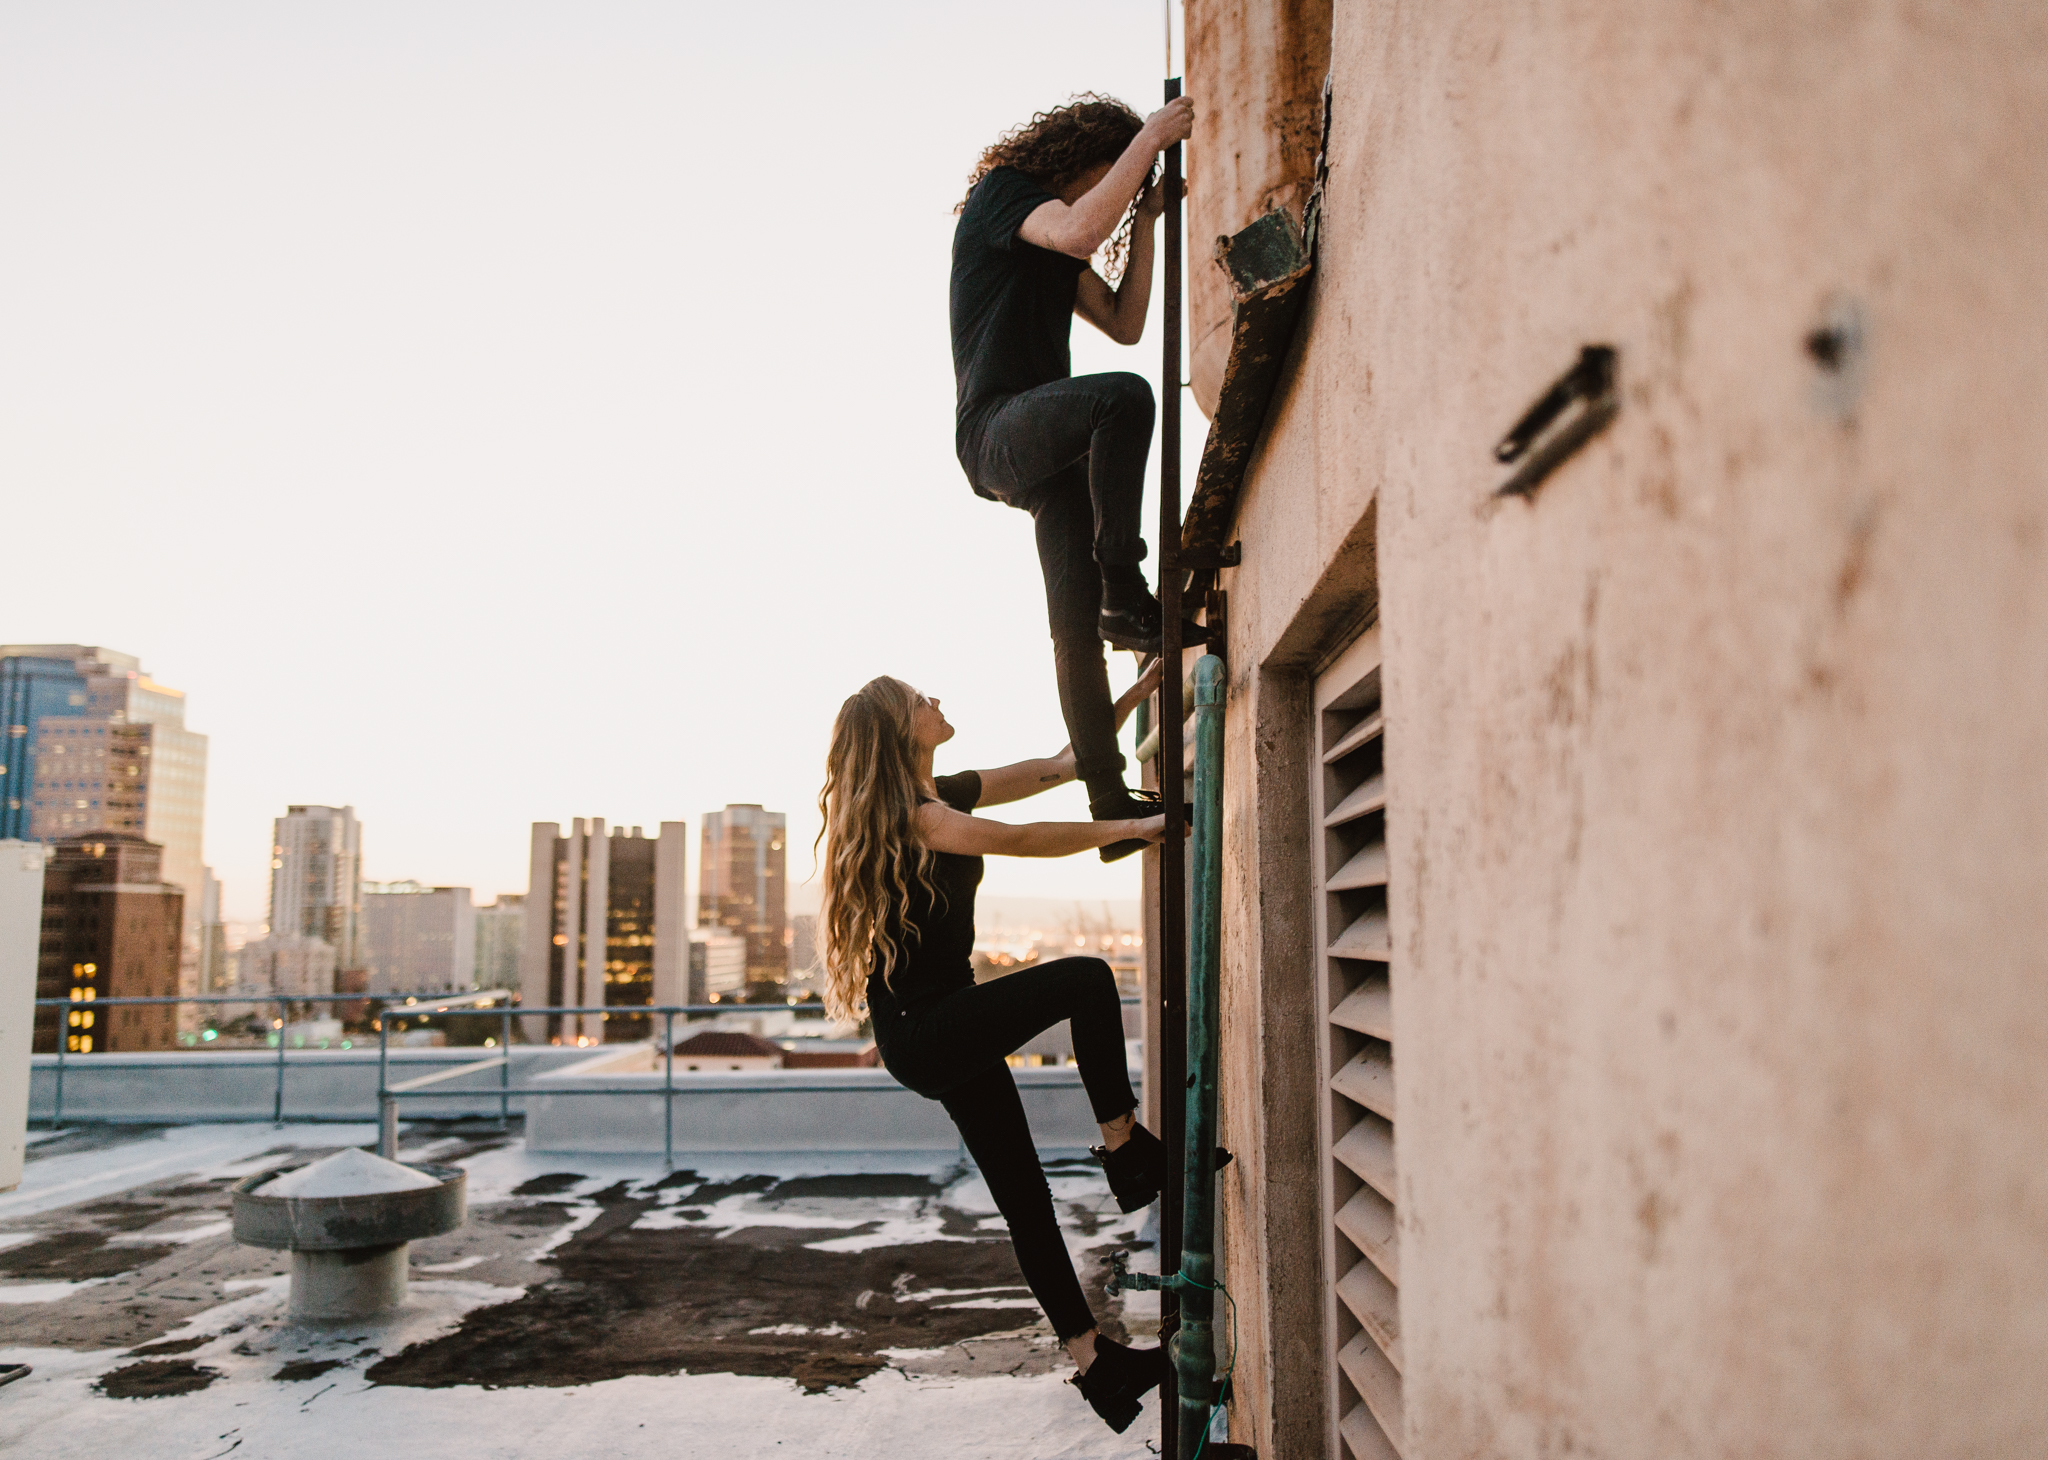 ©Isaiah-&-Taylor-Photography---Urban-Rooftop-Engagement,-Los-Angeles-Wedding-Photographer-049.jpg